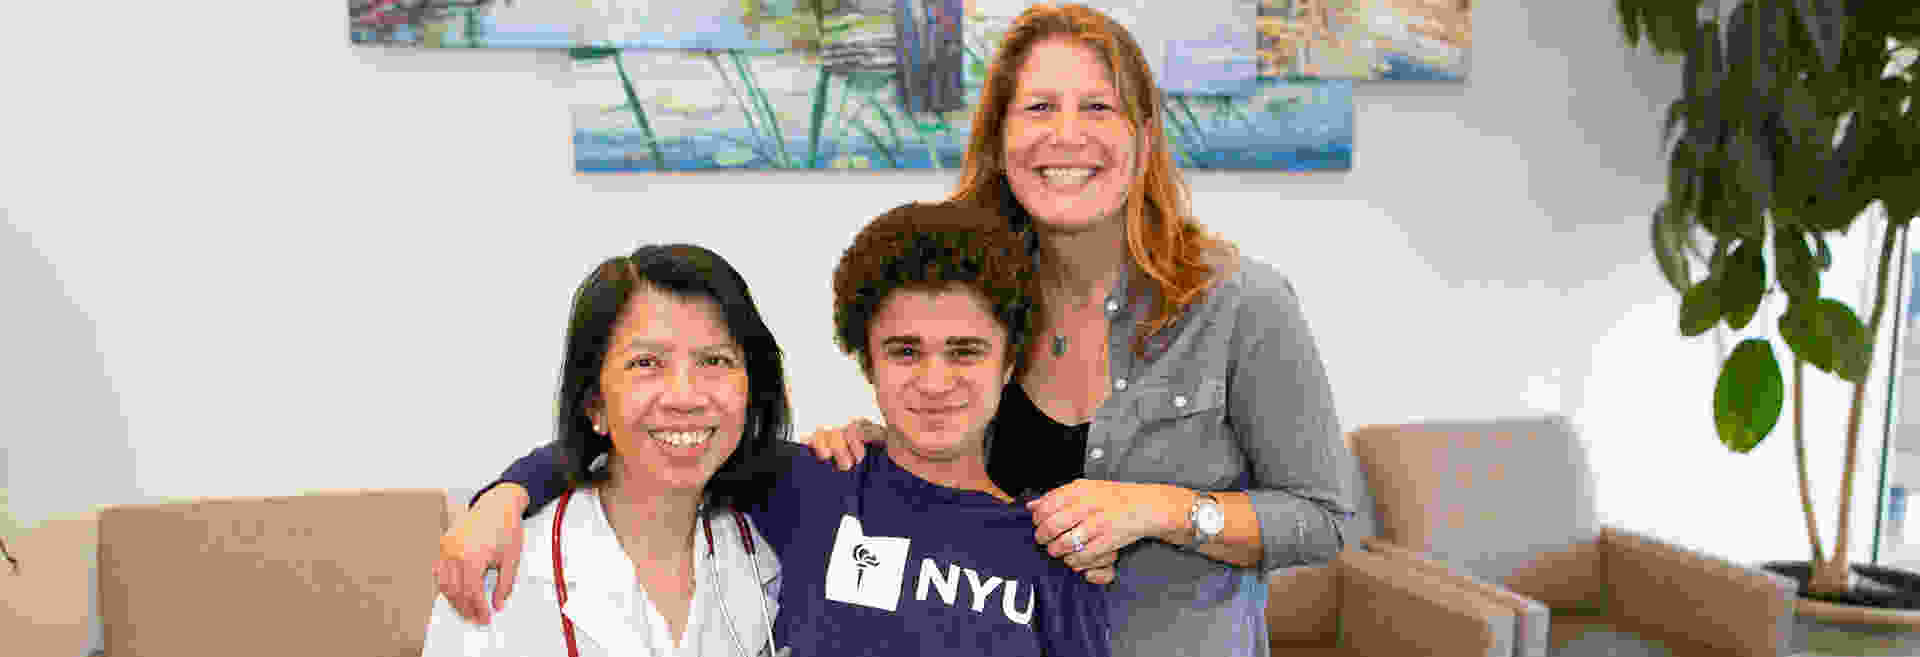 The Duchenne Program's Founding Director Dr. Brenda Wong with Charley and Tracy Seckler